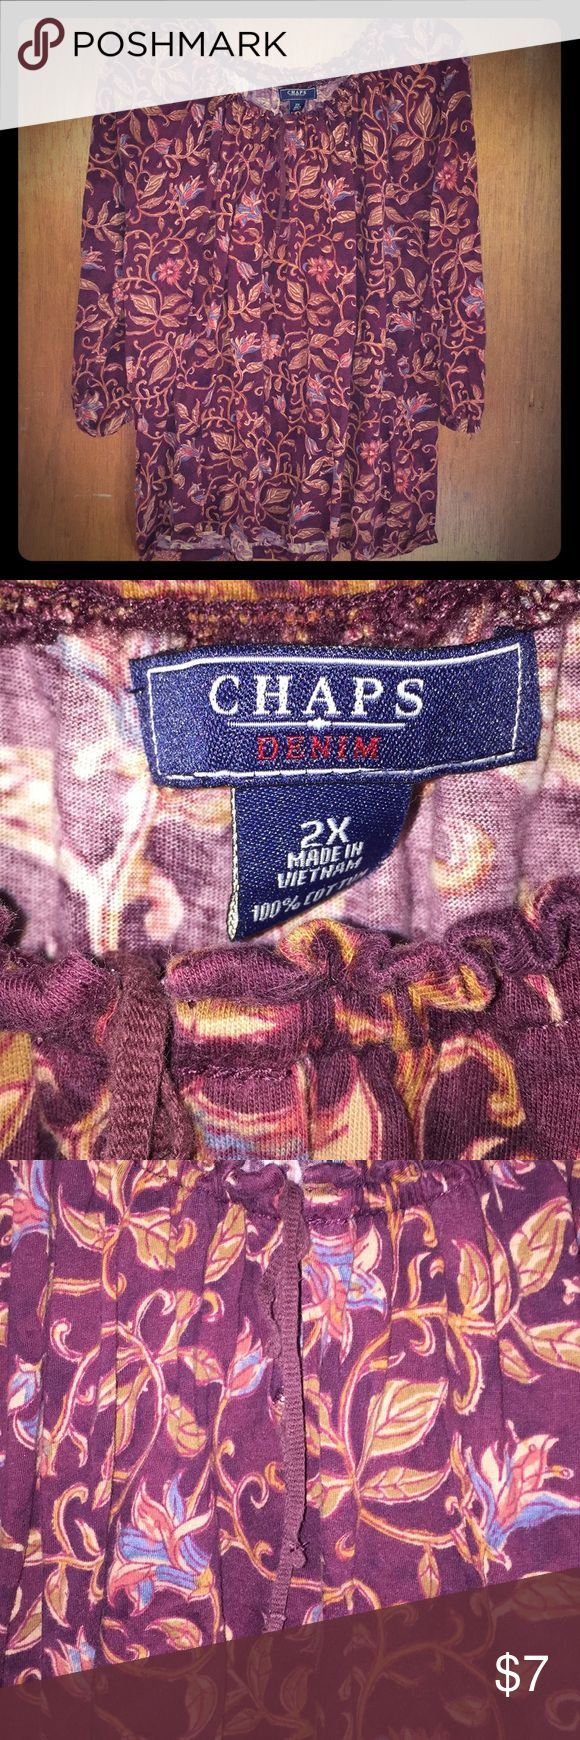 Chaps denim maroon floral Bardot top 3/4 sleeve 2X Chaps denim maroon floral Bardot top 3/4 sleeve size 2X 100% cotton Sleeves have elastic at the end Bardot top with string tie Good condition, pilling on fabric, no holes, rips, stains or tears   Length: 22 inches Width: 22 inches Chaps Tops Tees - Long Sleeve